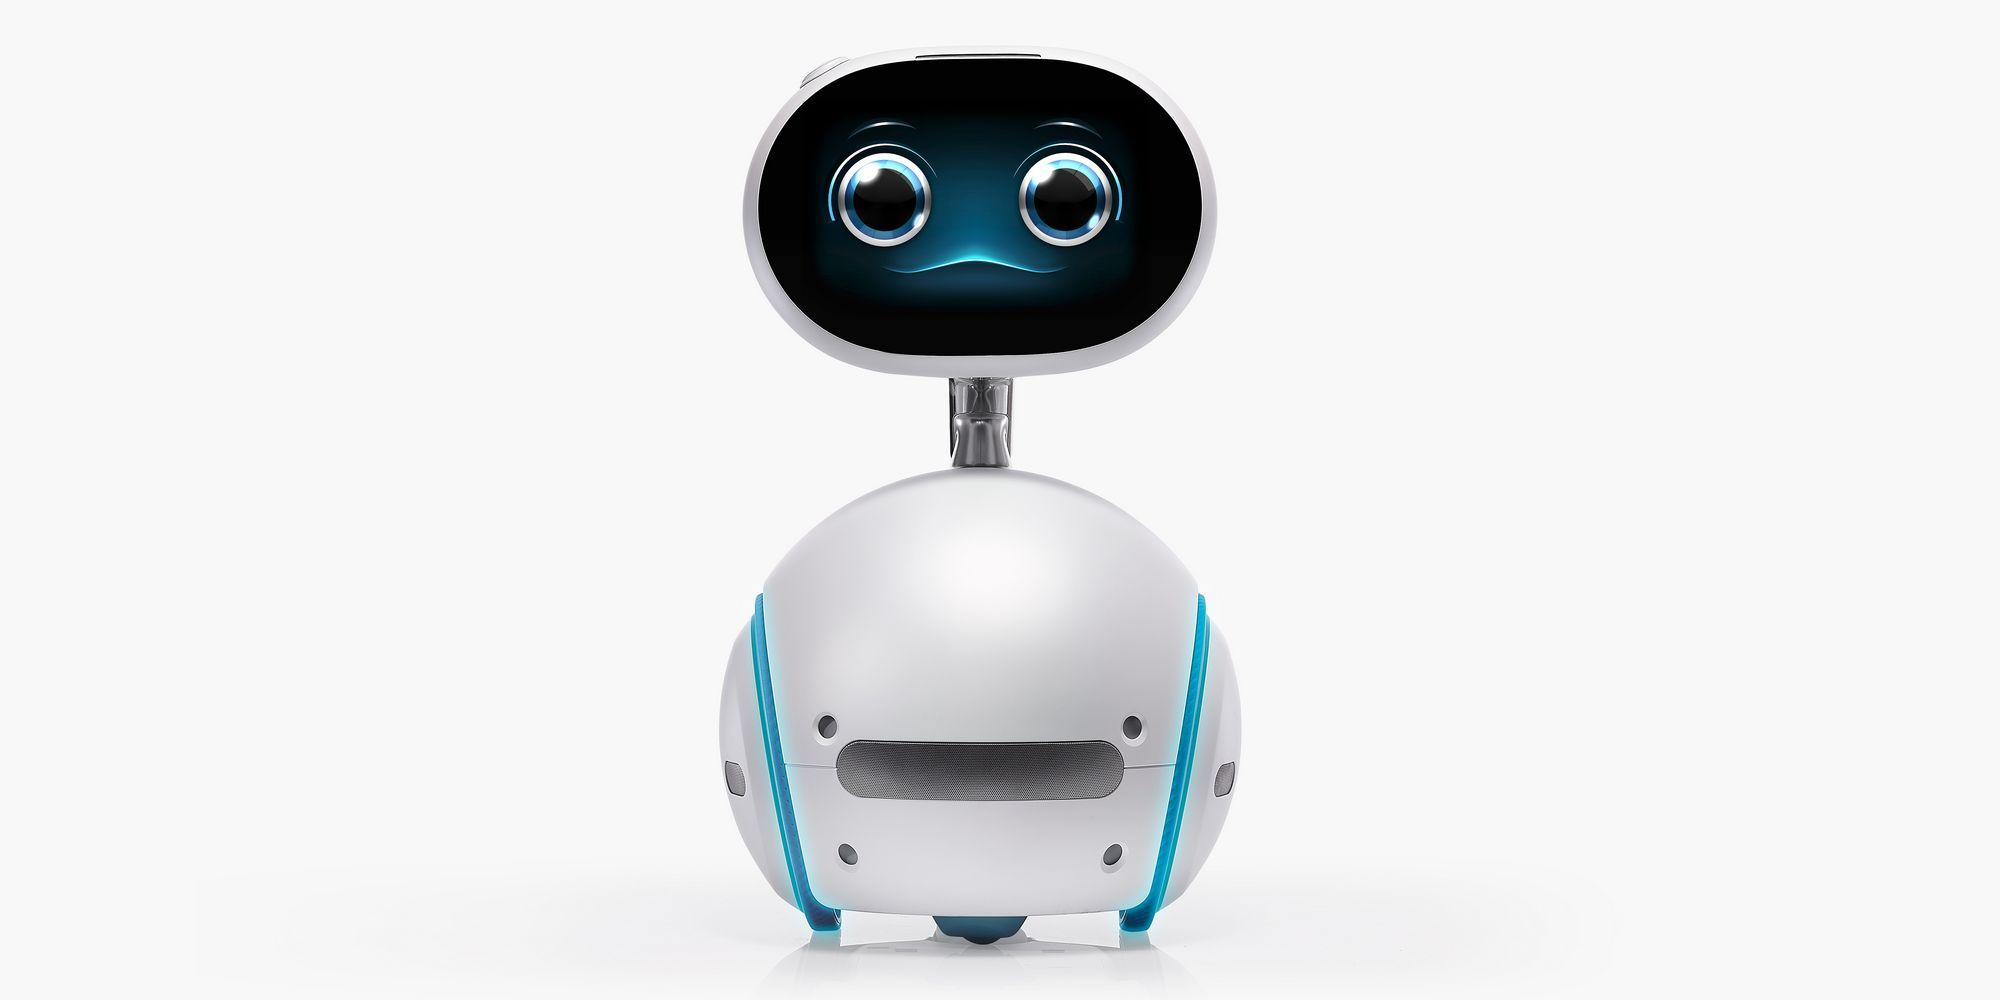 asus zenbo g nstiger smart home roboter. Black Bedroom Furniture Sets. Home Design Ideas